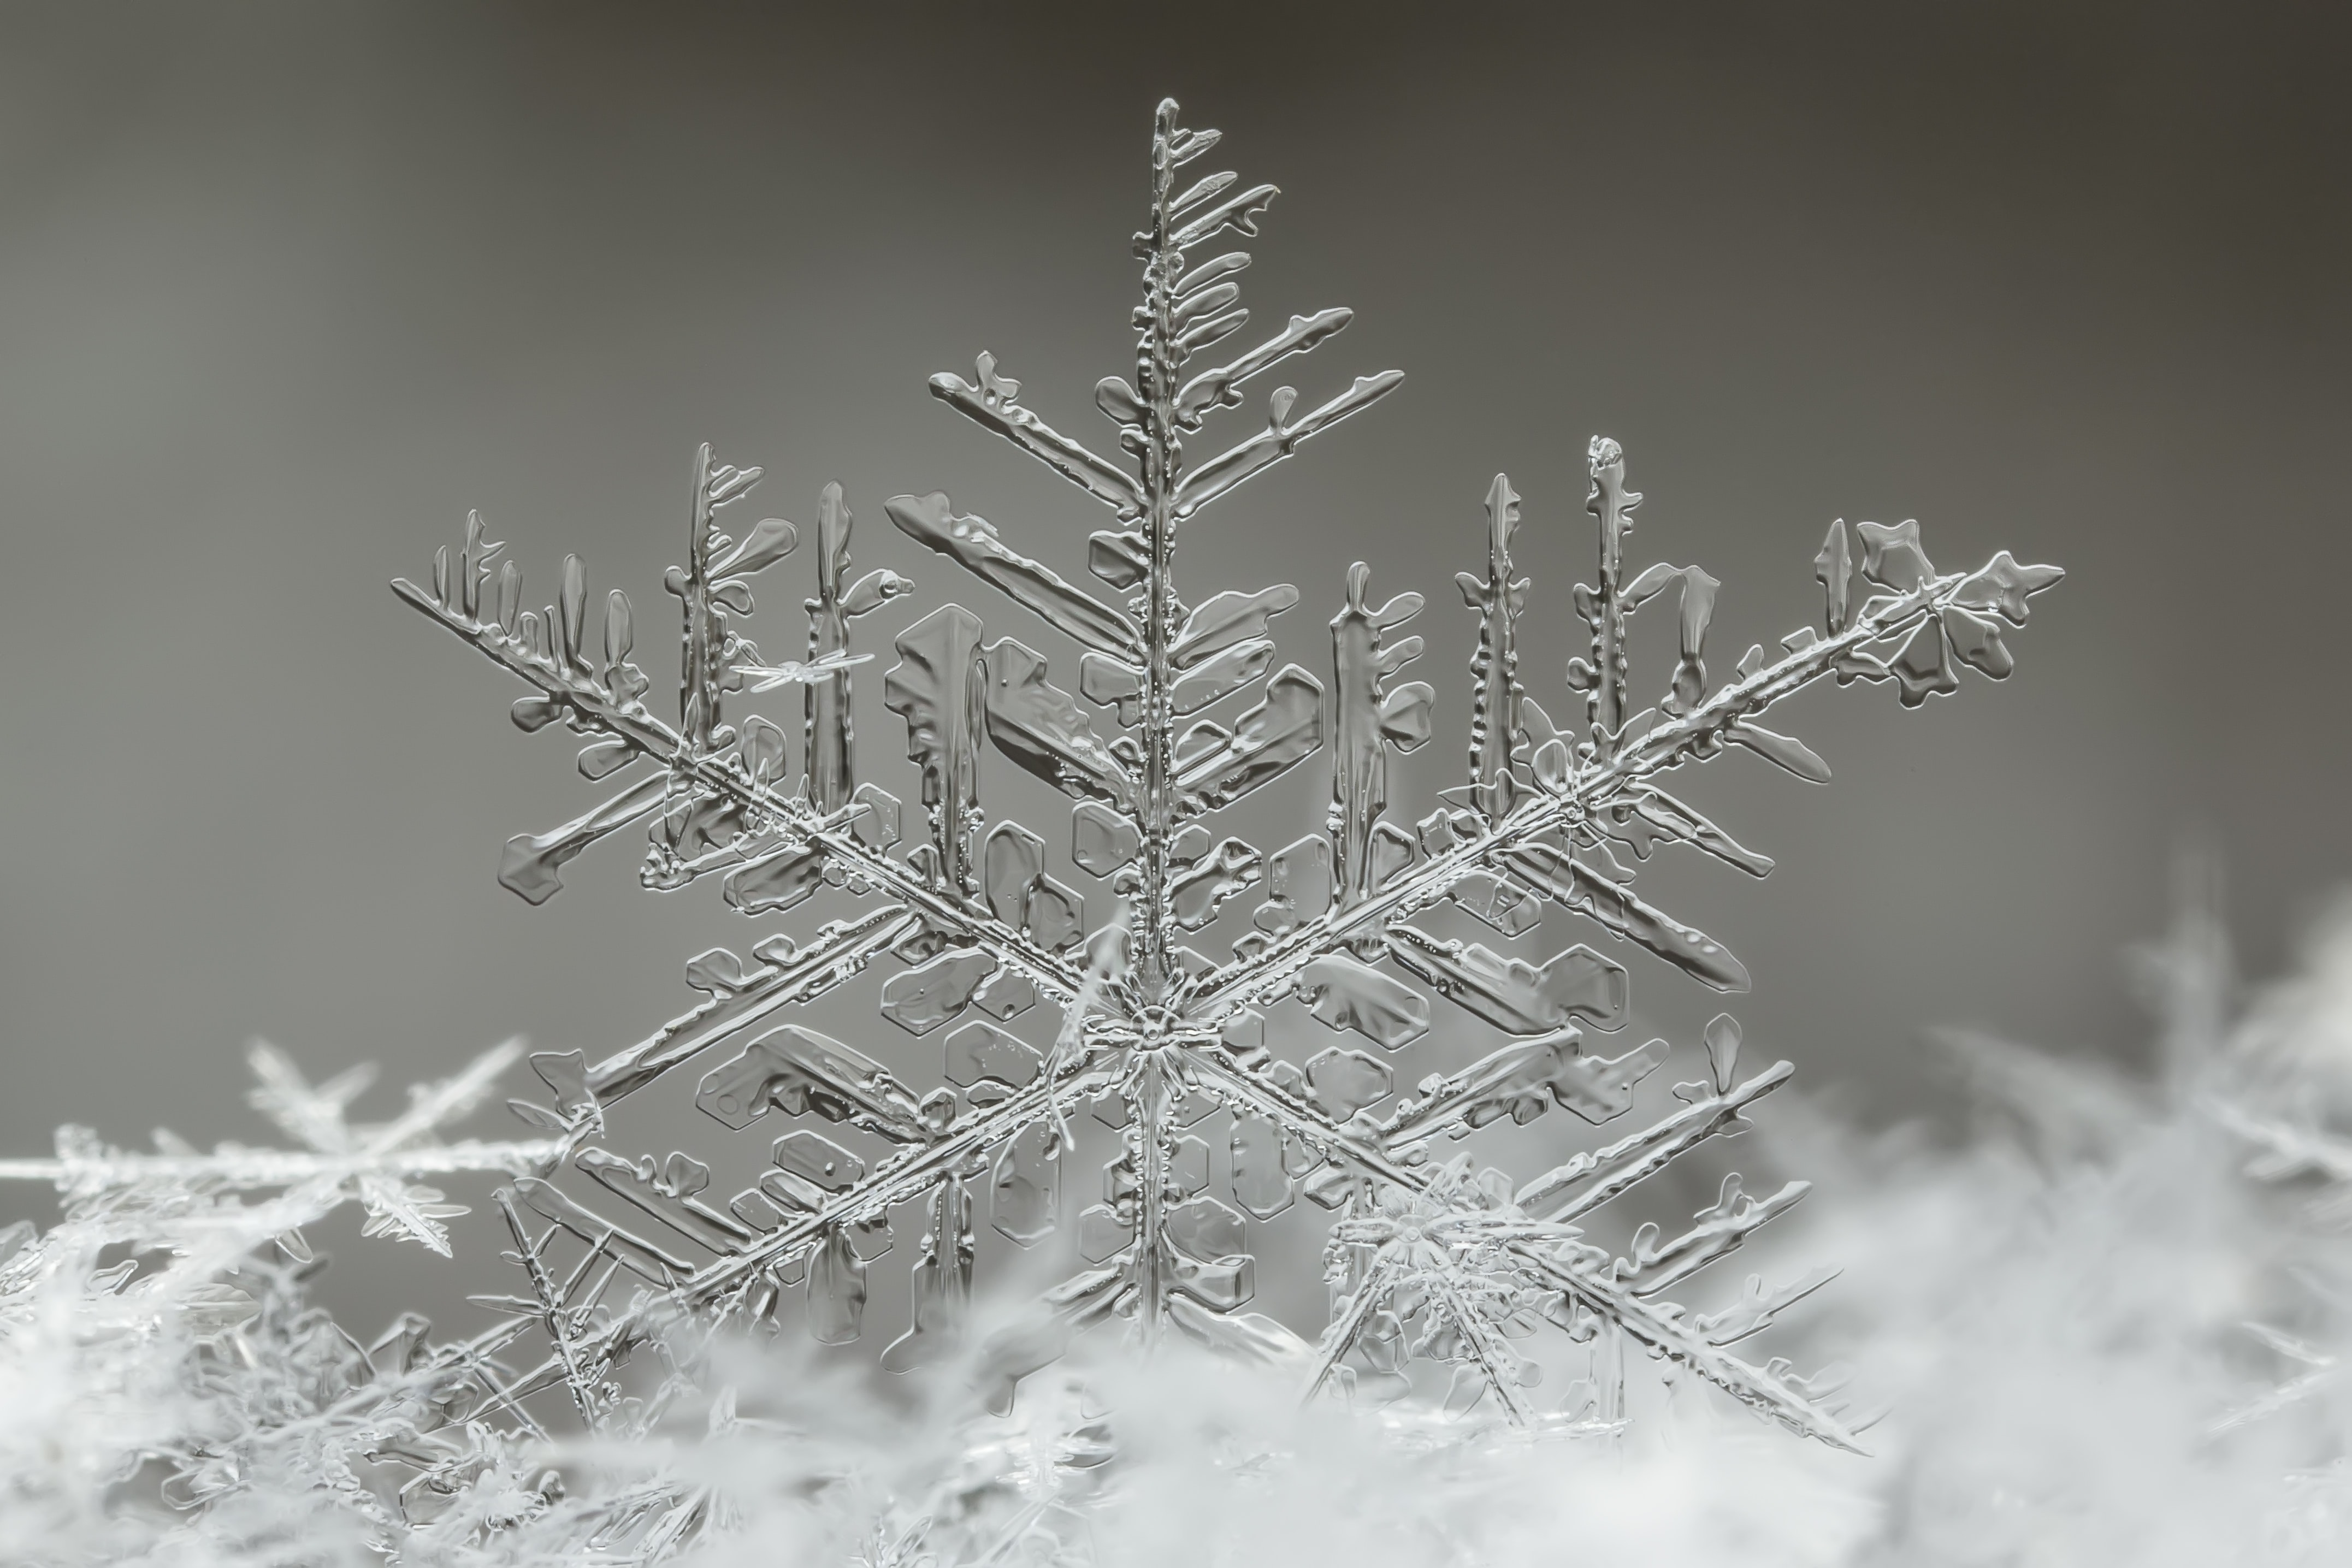 snowflakes formation